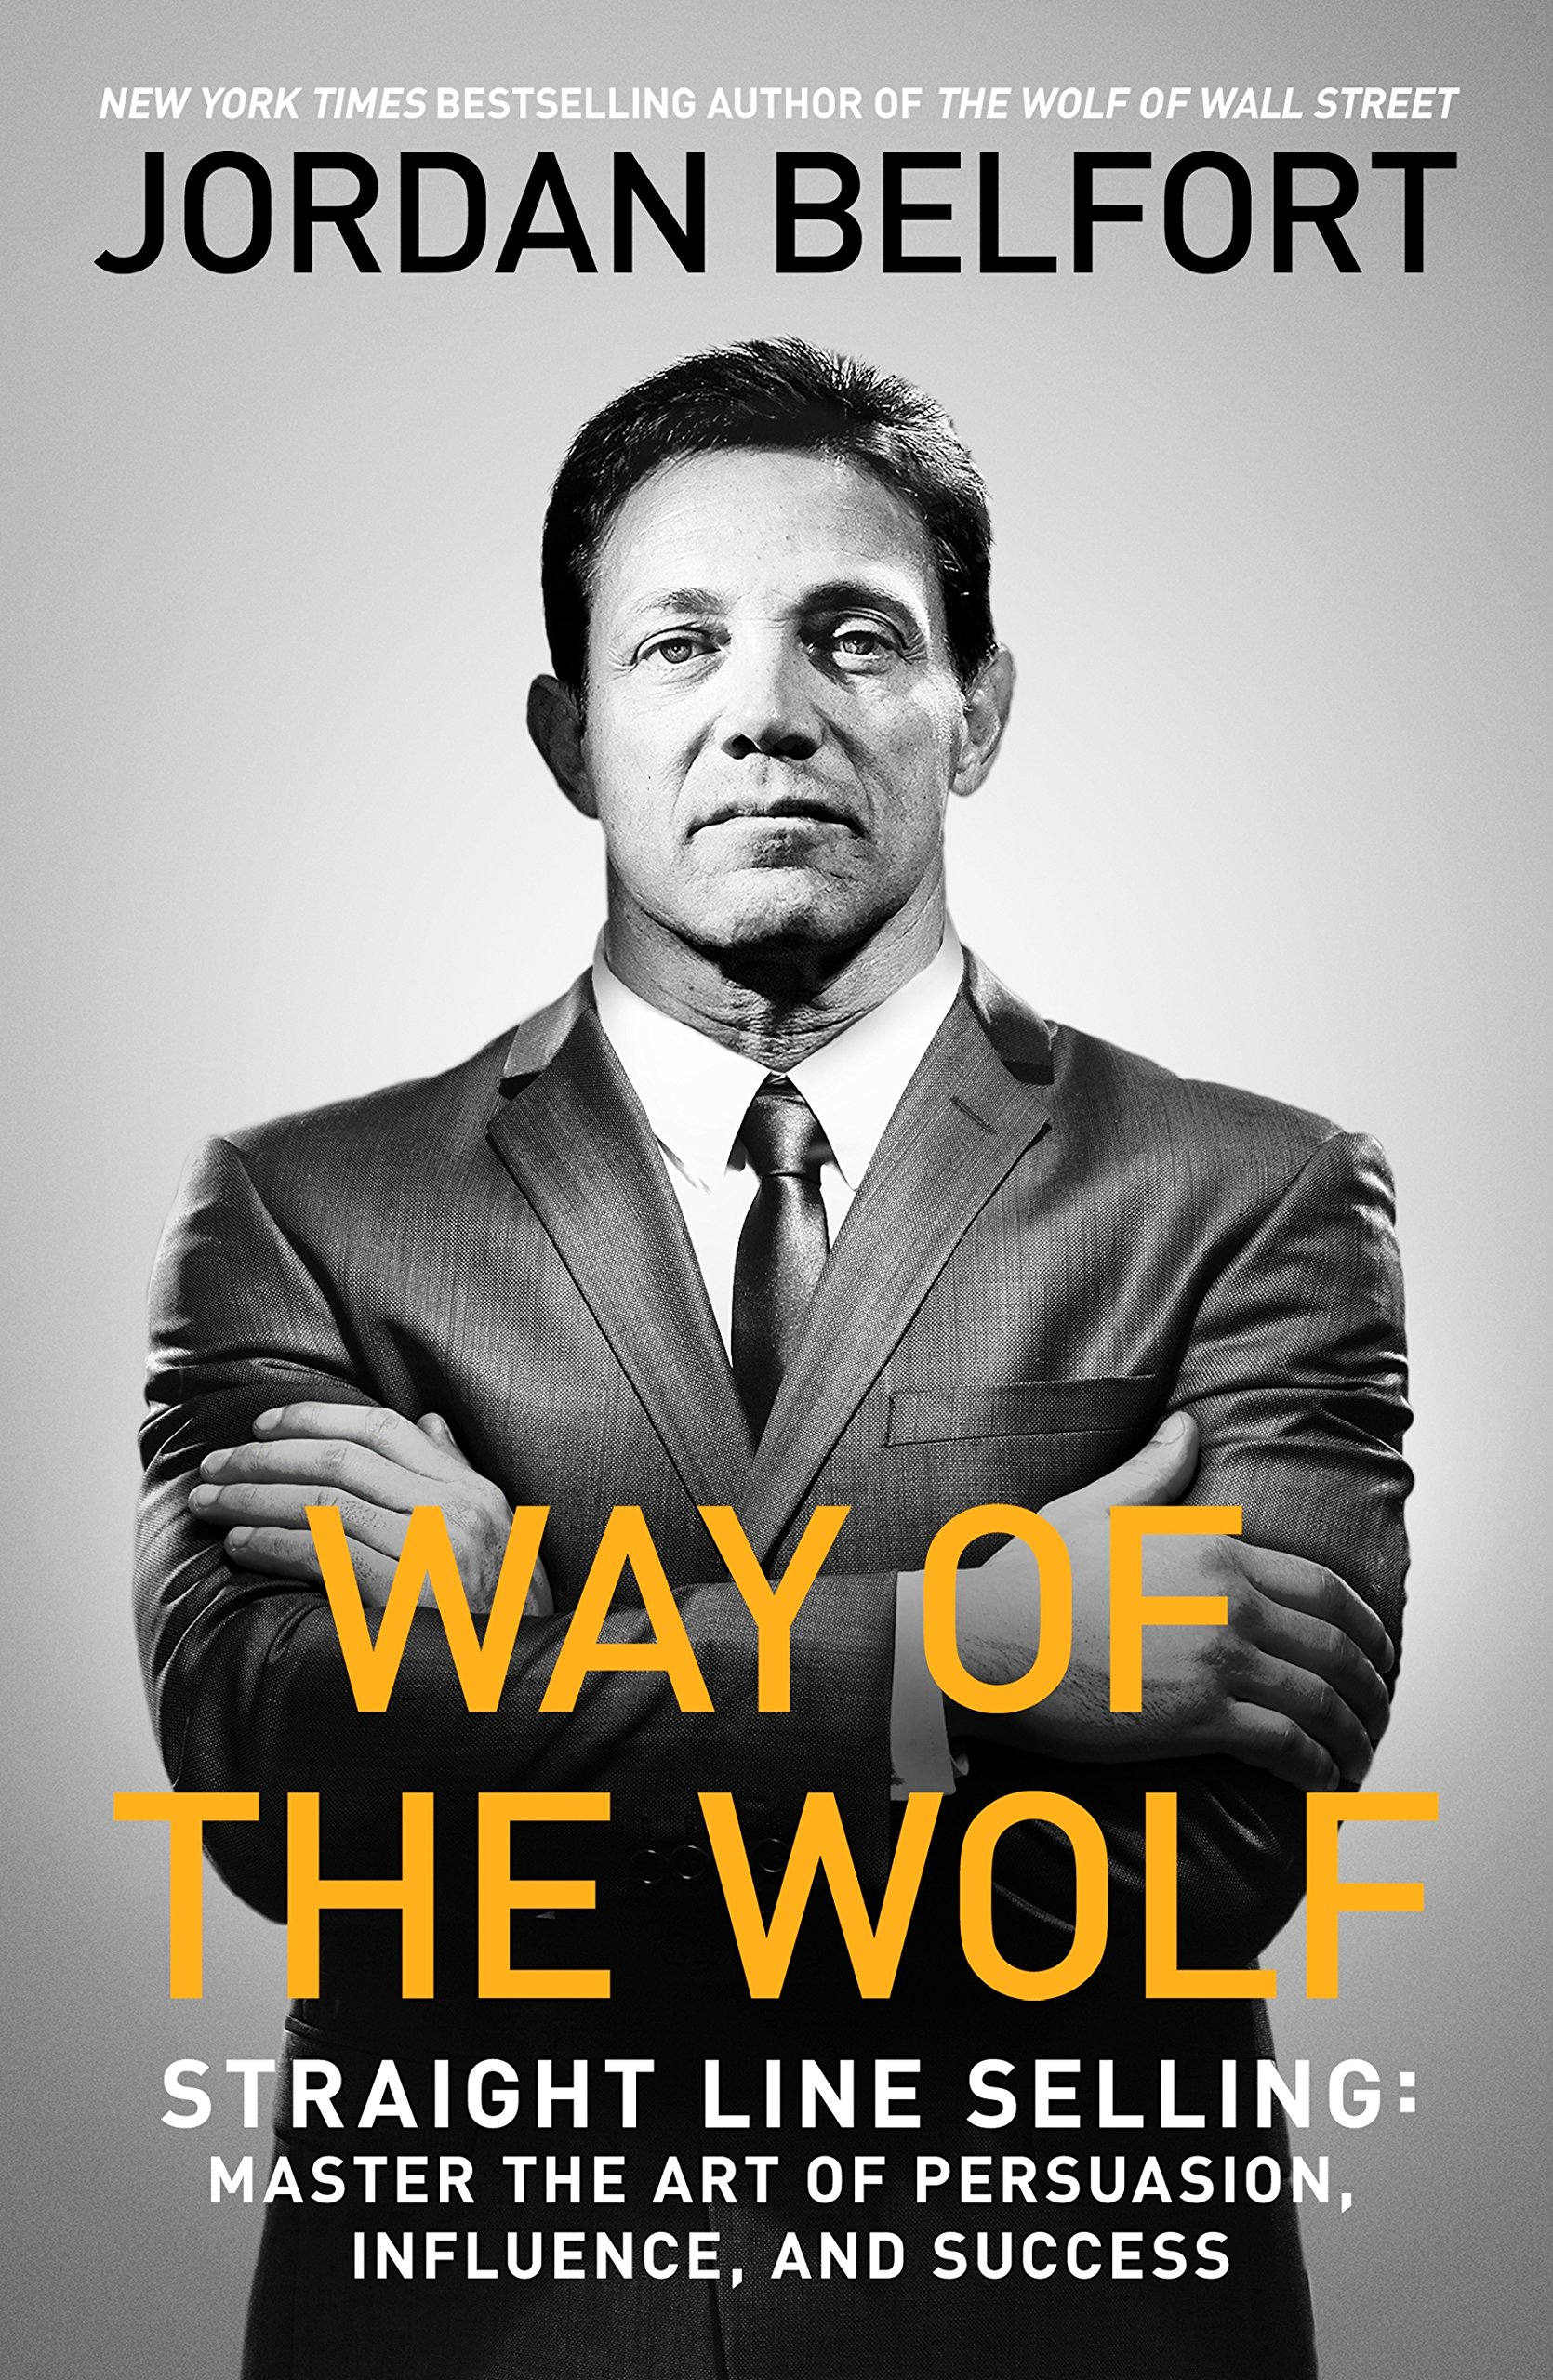 Way of the Wolf: Straight line selling: Master the art of persuasion, influence, and success — Jordan Belfort